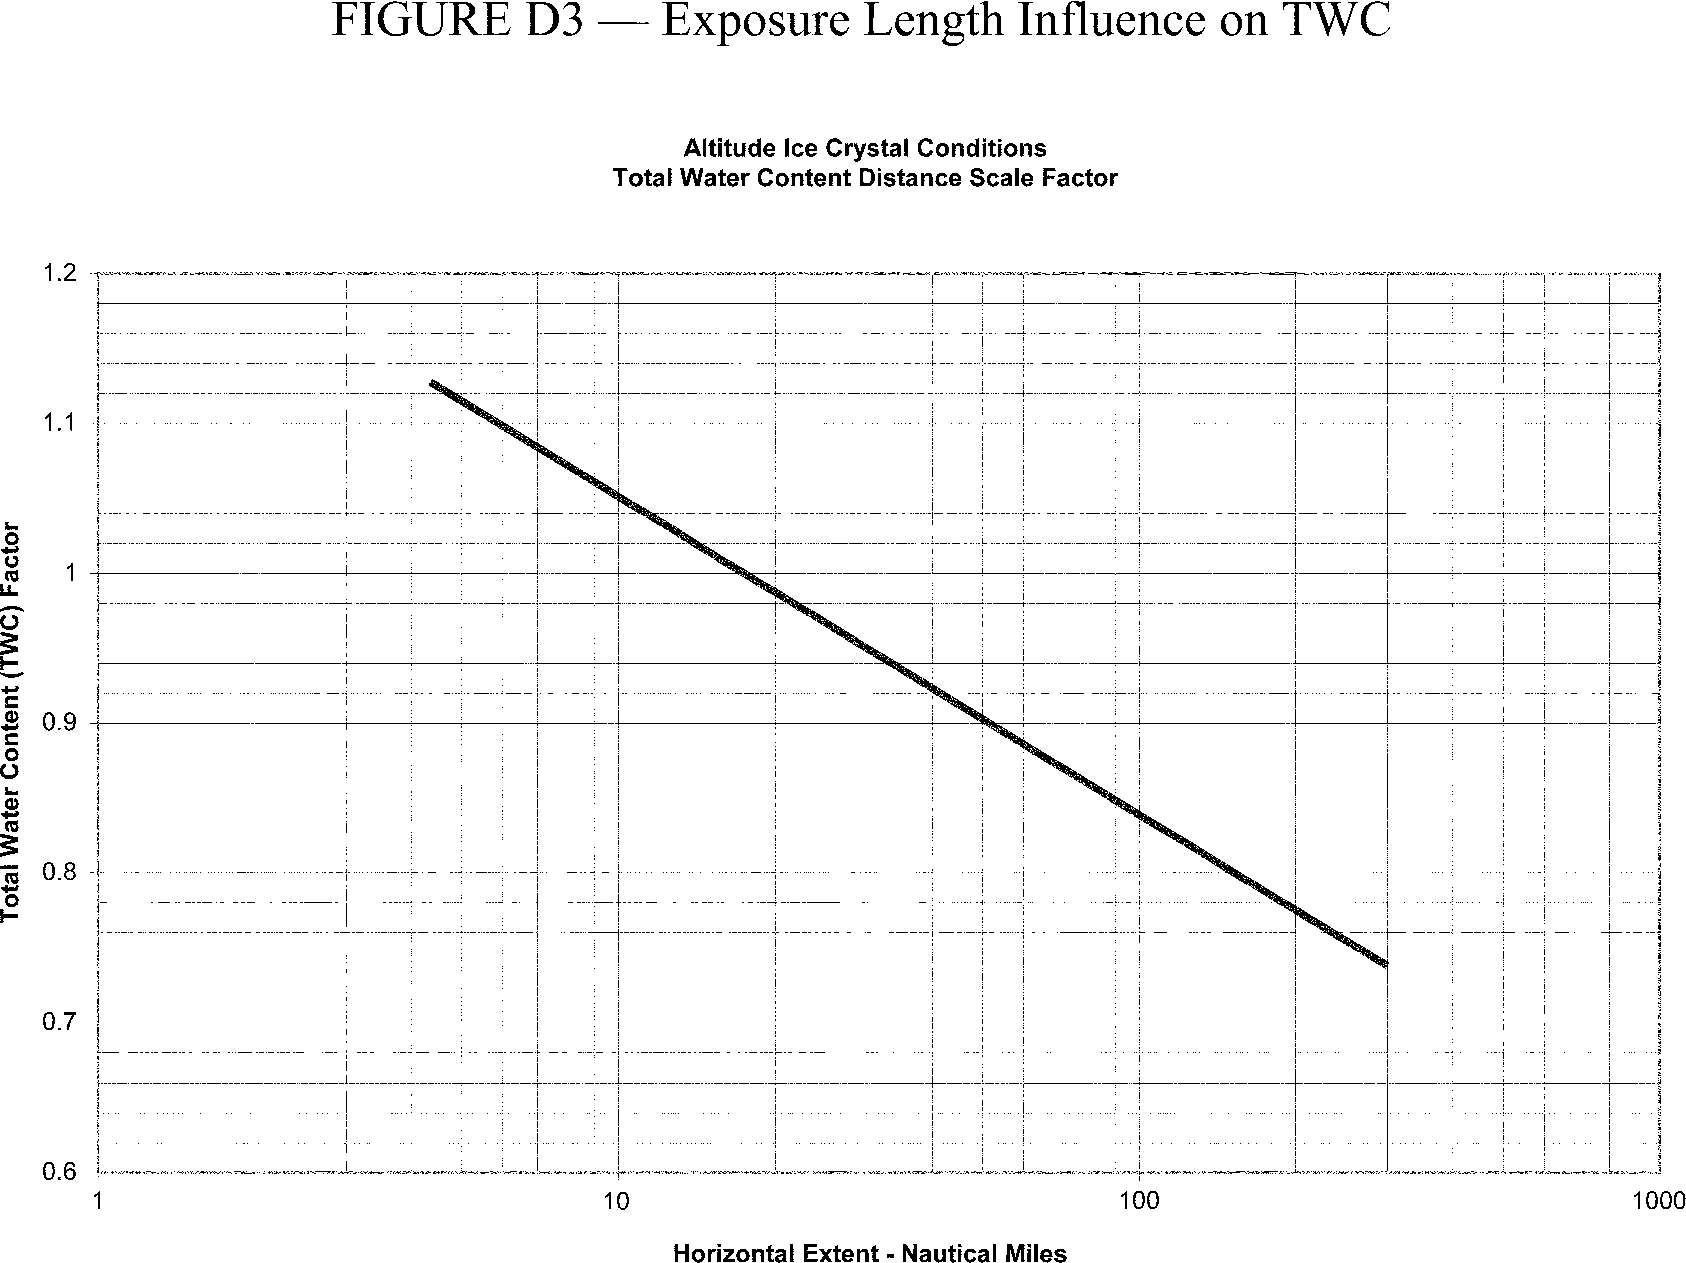 Graphic of The TWC levels displayed in Figure D2 of this Appendix represent TWC values for a standard exposure distance (horizontal cloud length) of 17.4 nautical miles that must be adjusted with length of icing exposure.